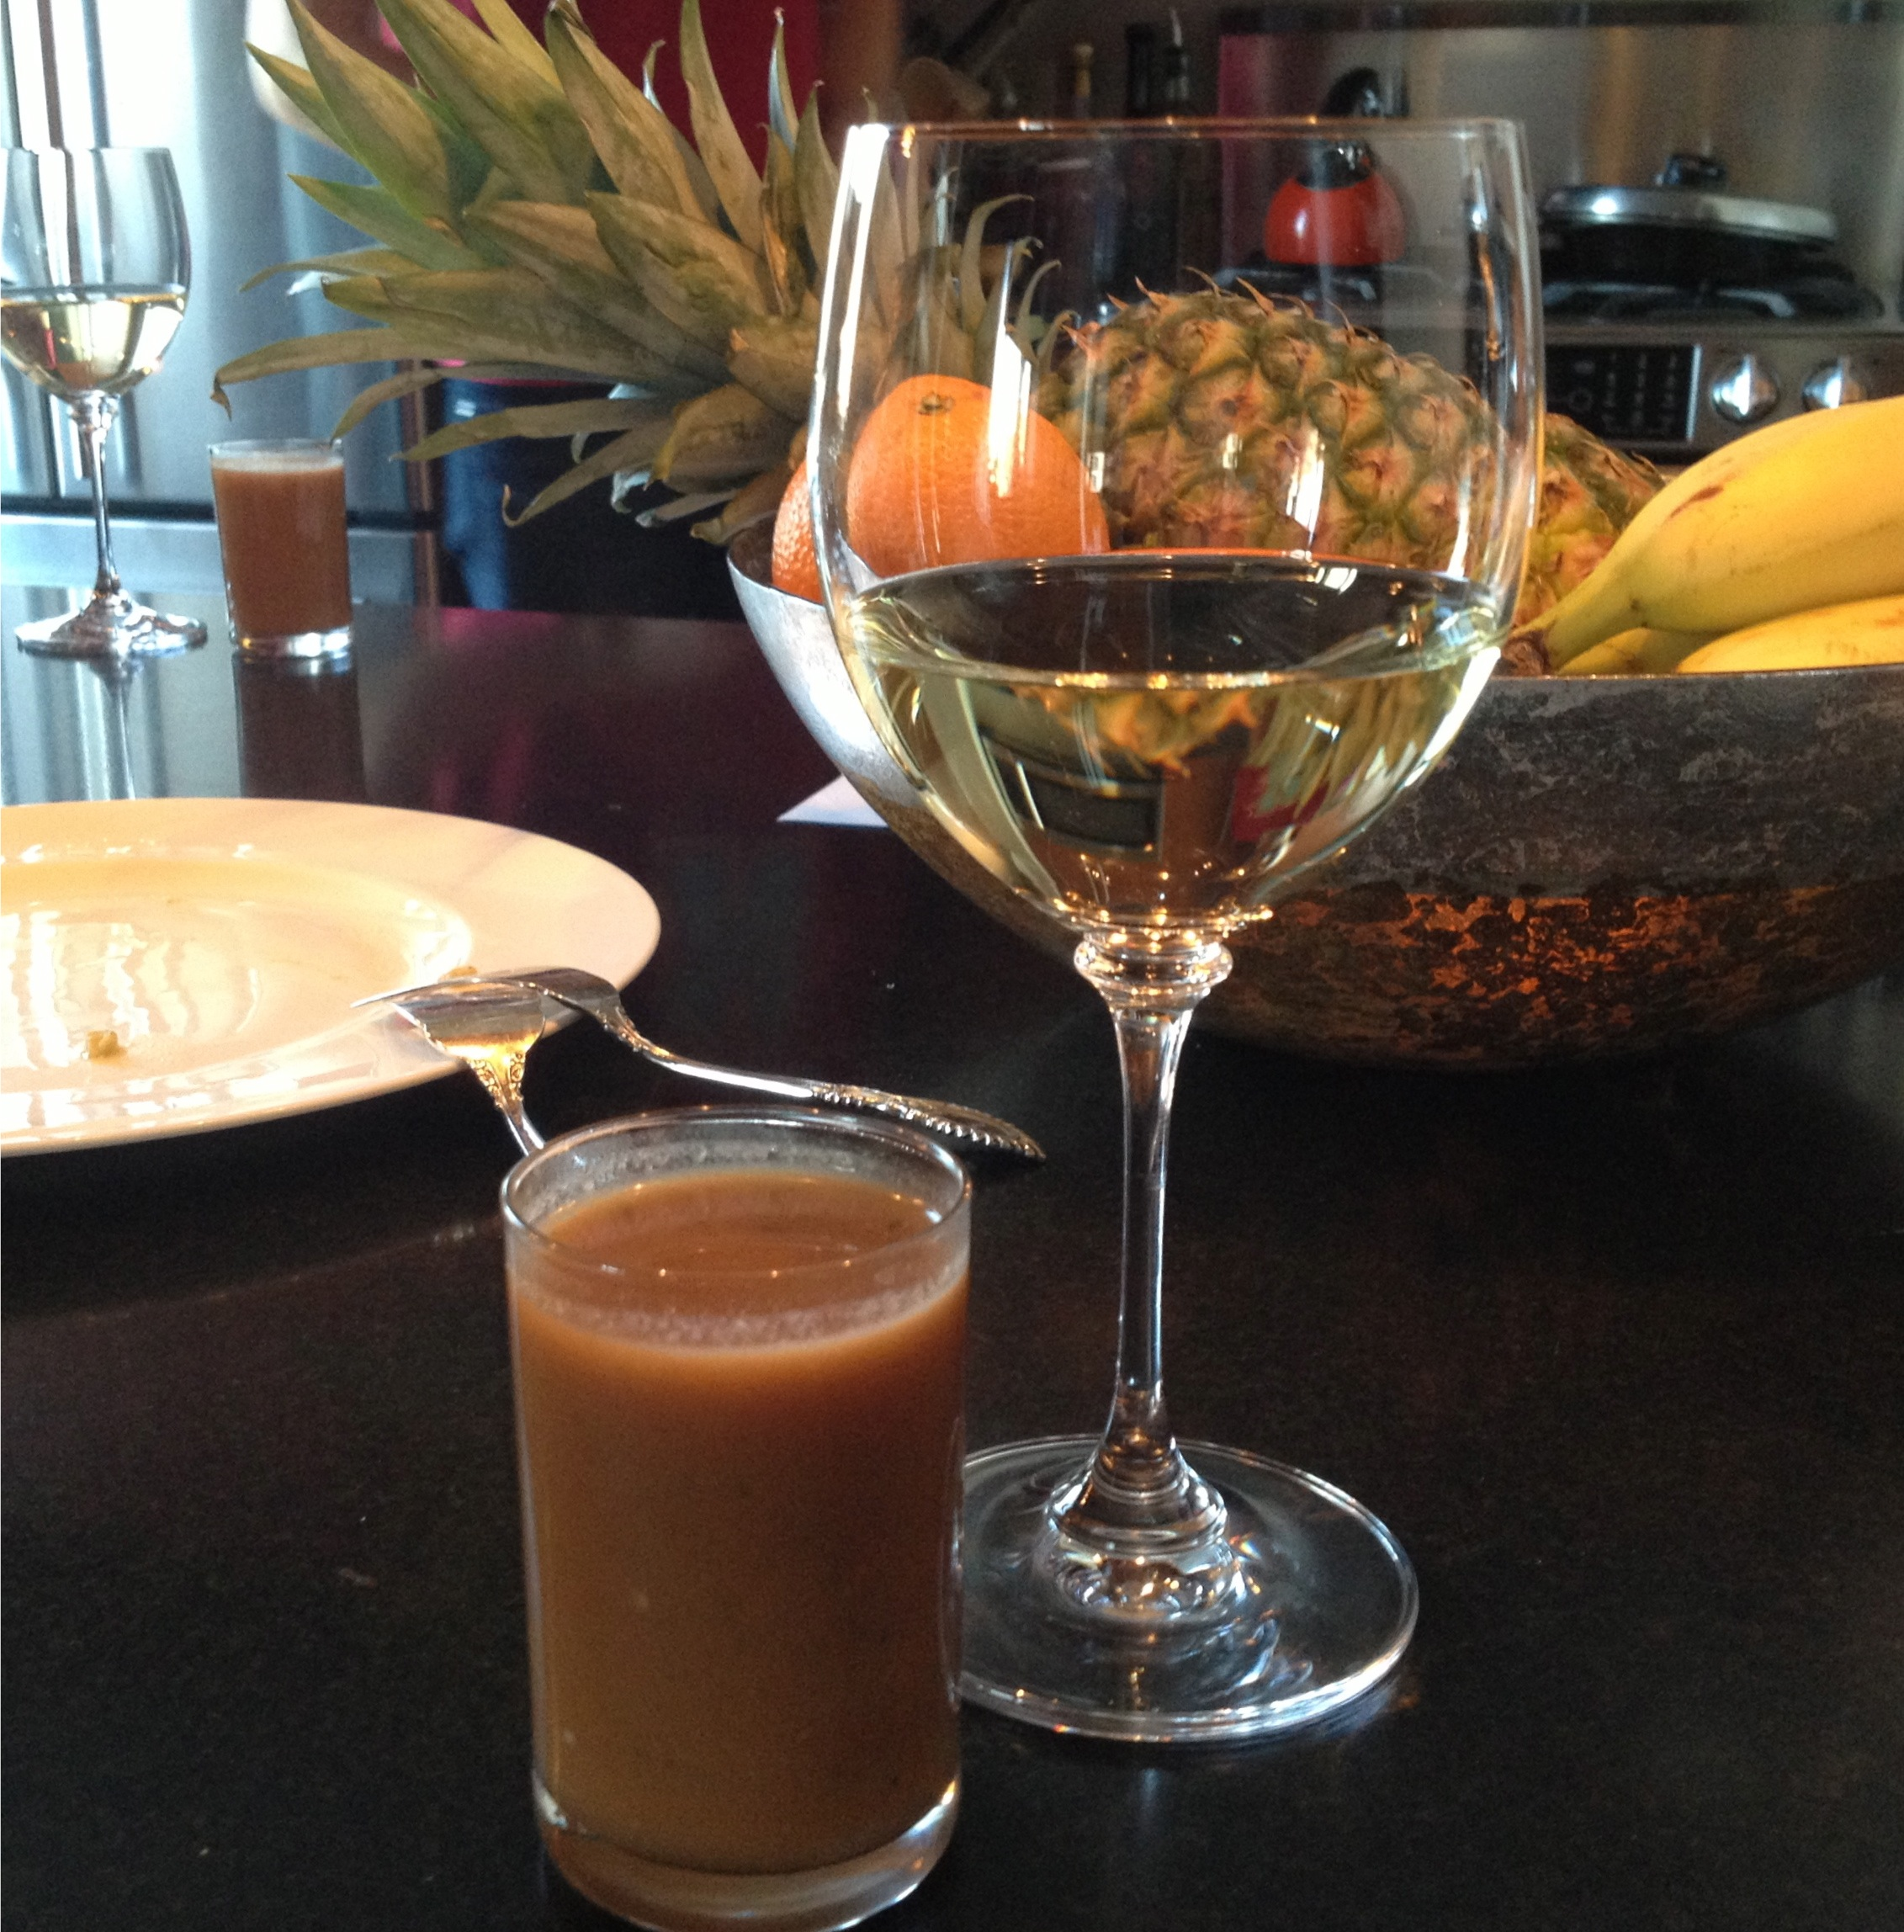 Gazpacho served in a glass, recipe from The French Laundry cookbook with a glass of Vouvray wine.